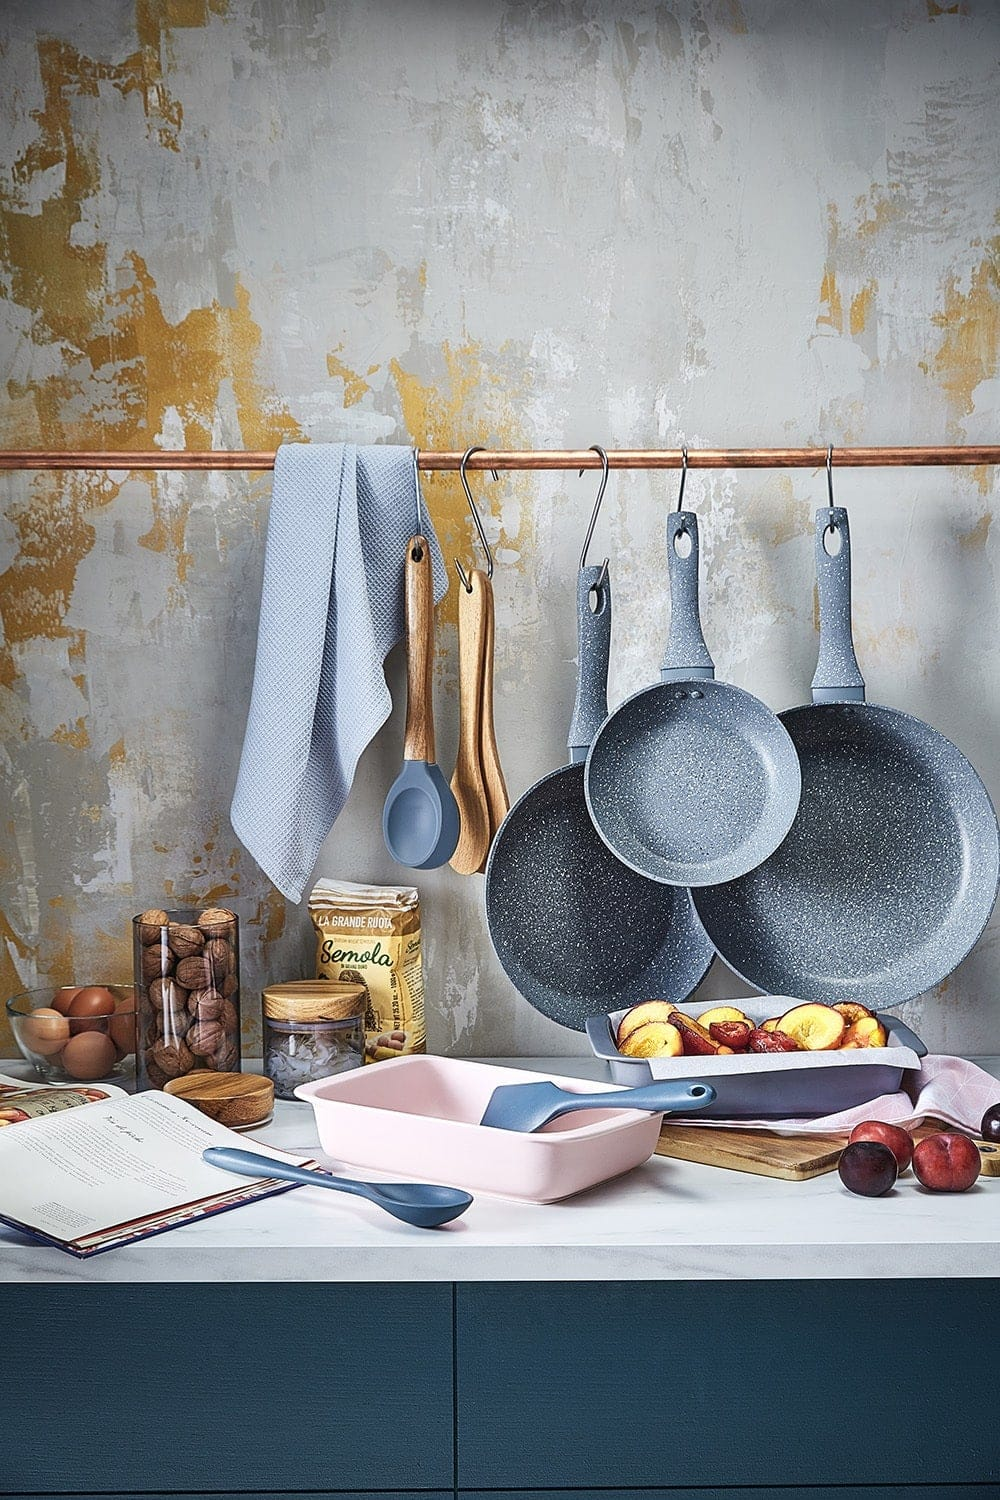 target homewares 2018 blue non stick pans and pink baking tray